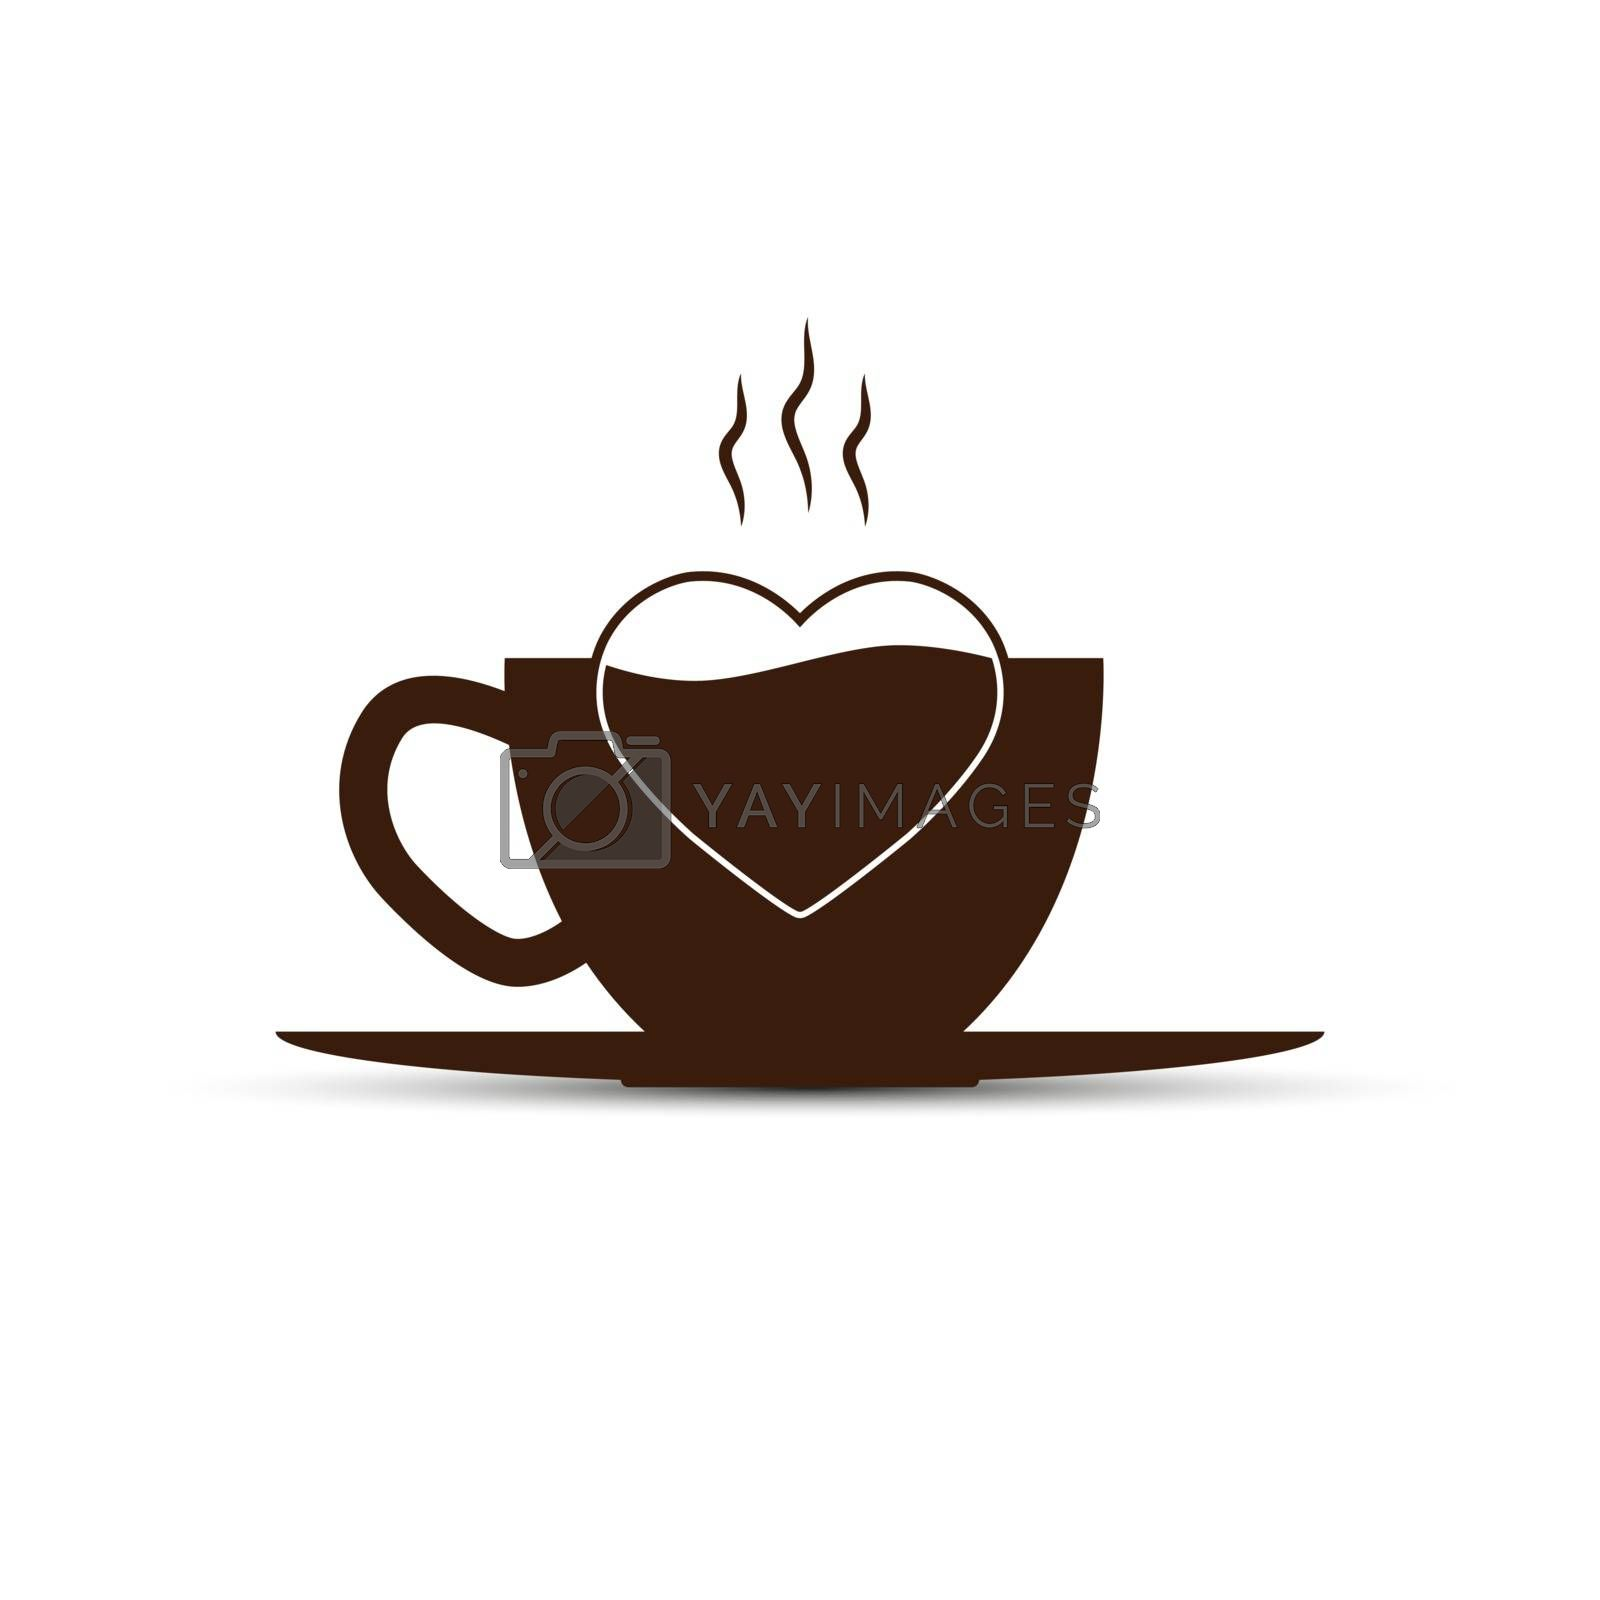 Royalty free image of Simple logo, coffee Cup and heart silhouette by Grommik